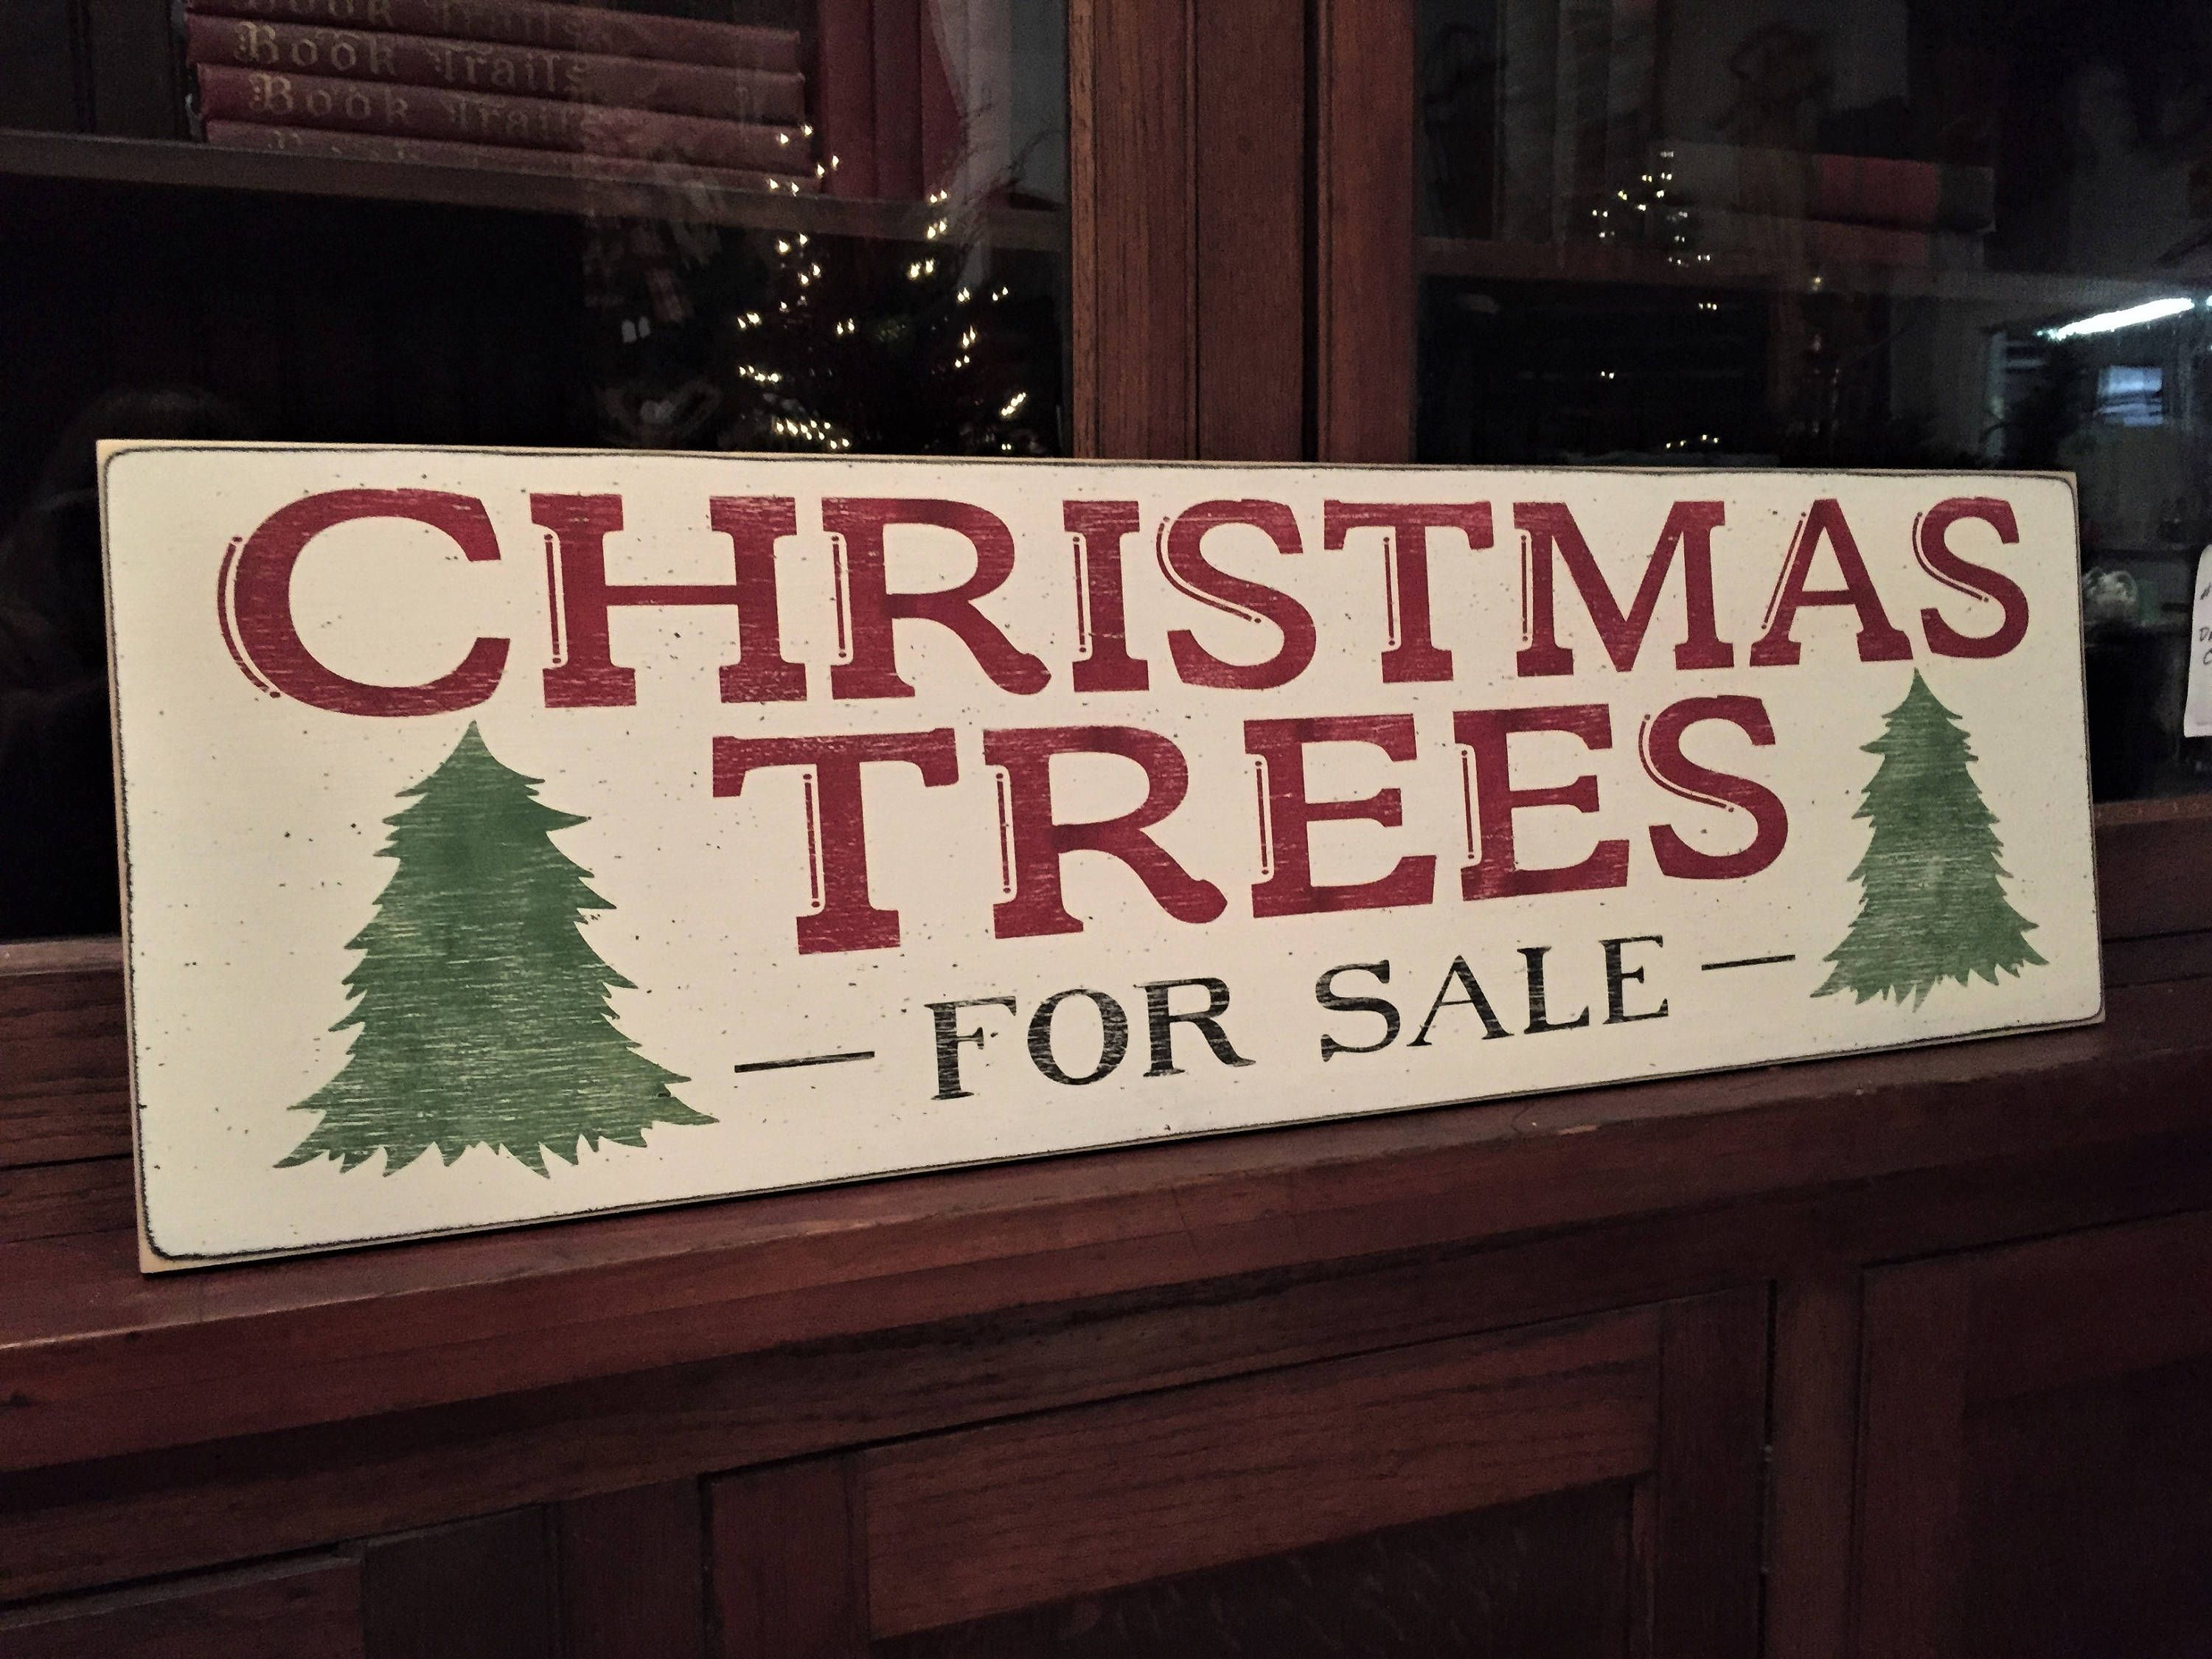 Christmas Trees for Sale sign, Christmas Farmhouse sign